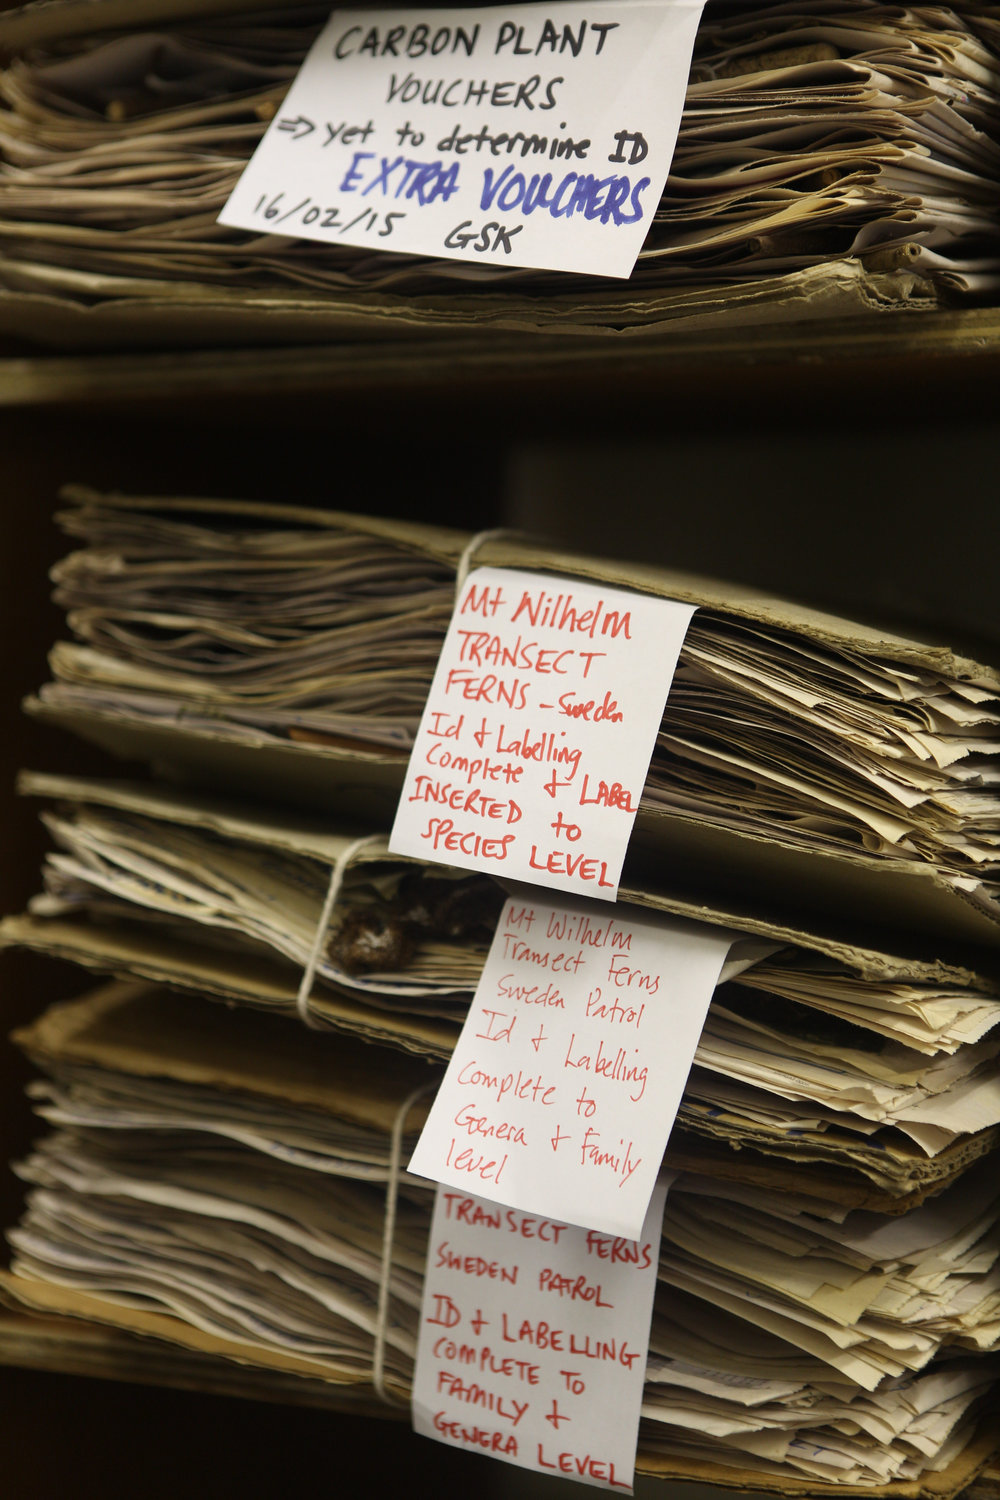 Specimens from rainforest trees in the Binatang Research Centre herbarium.